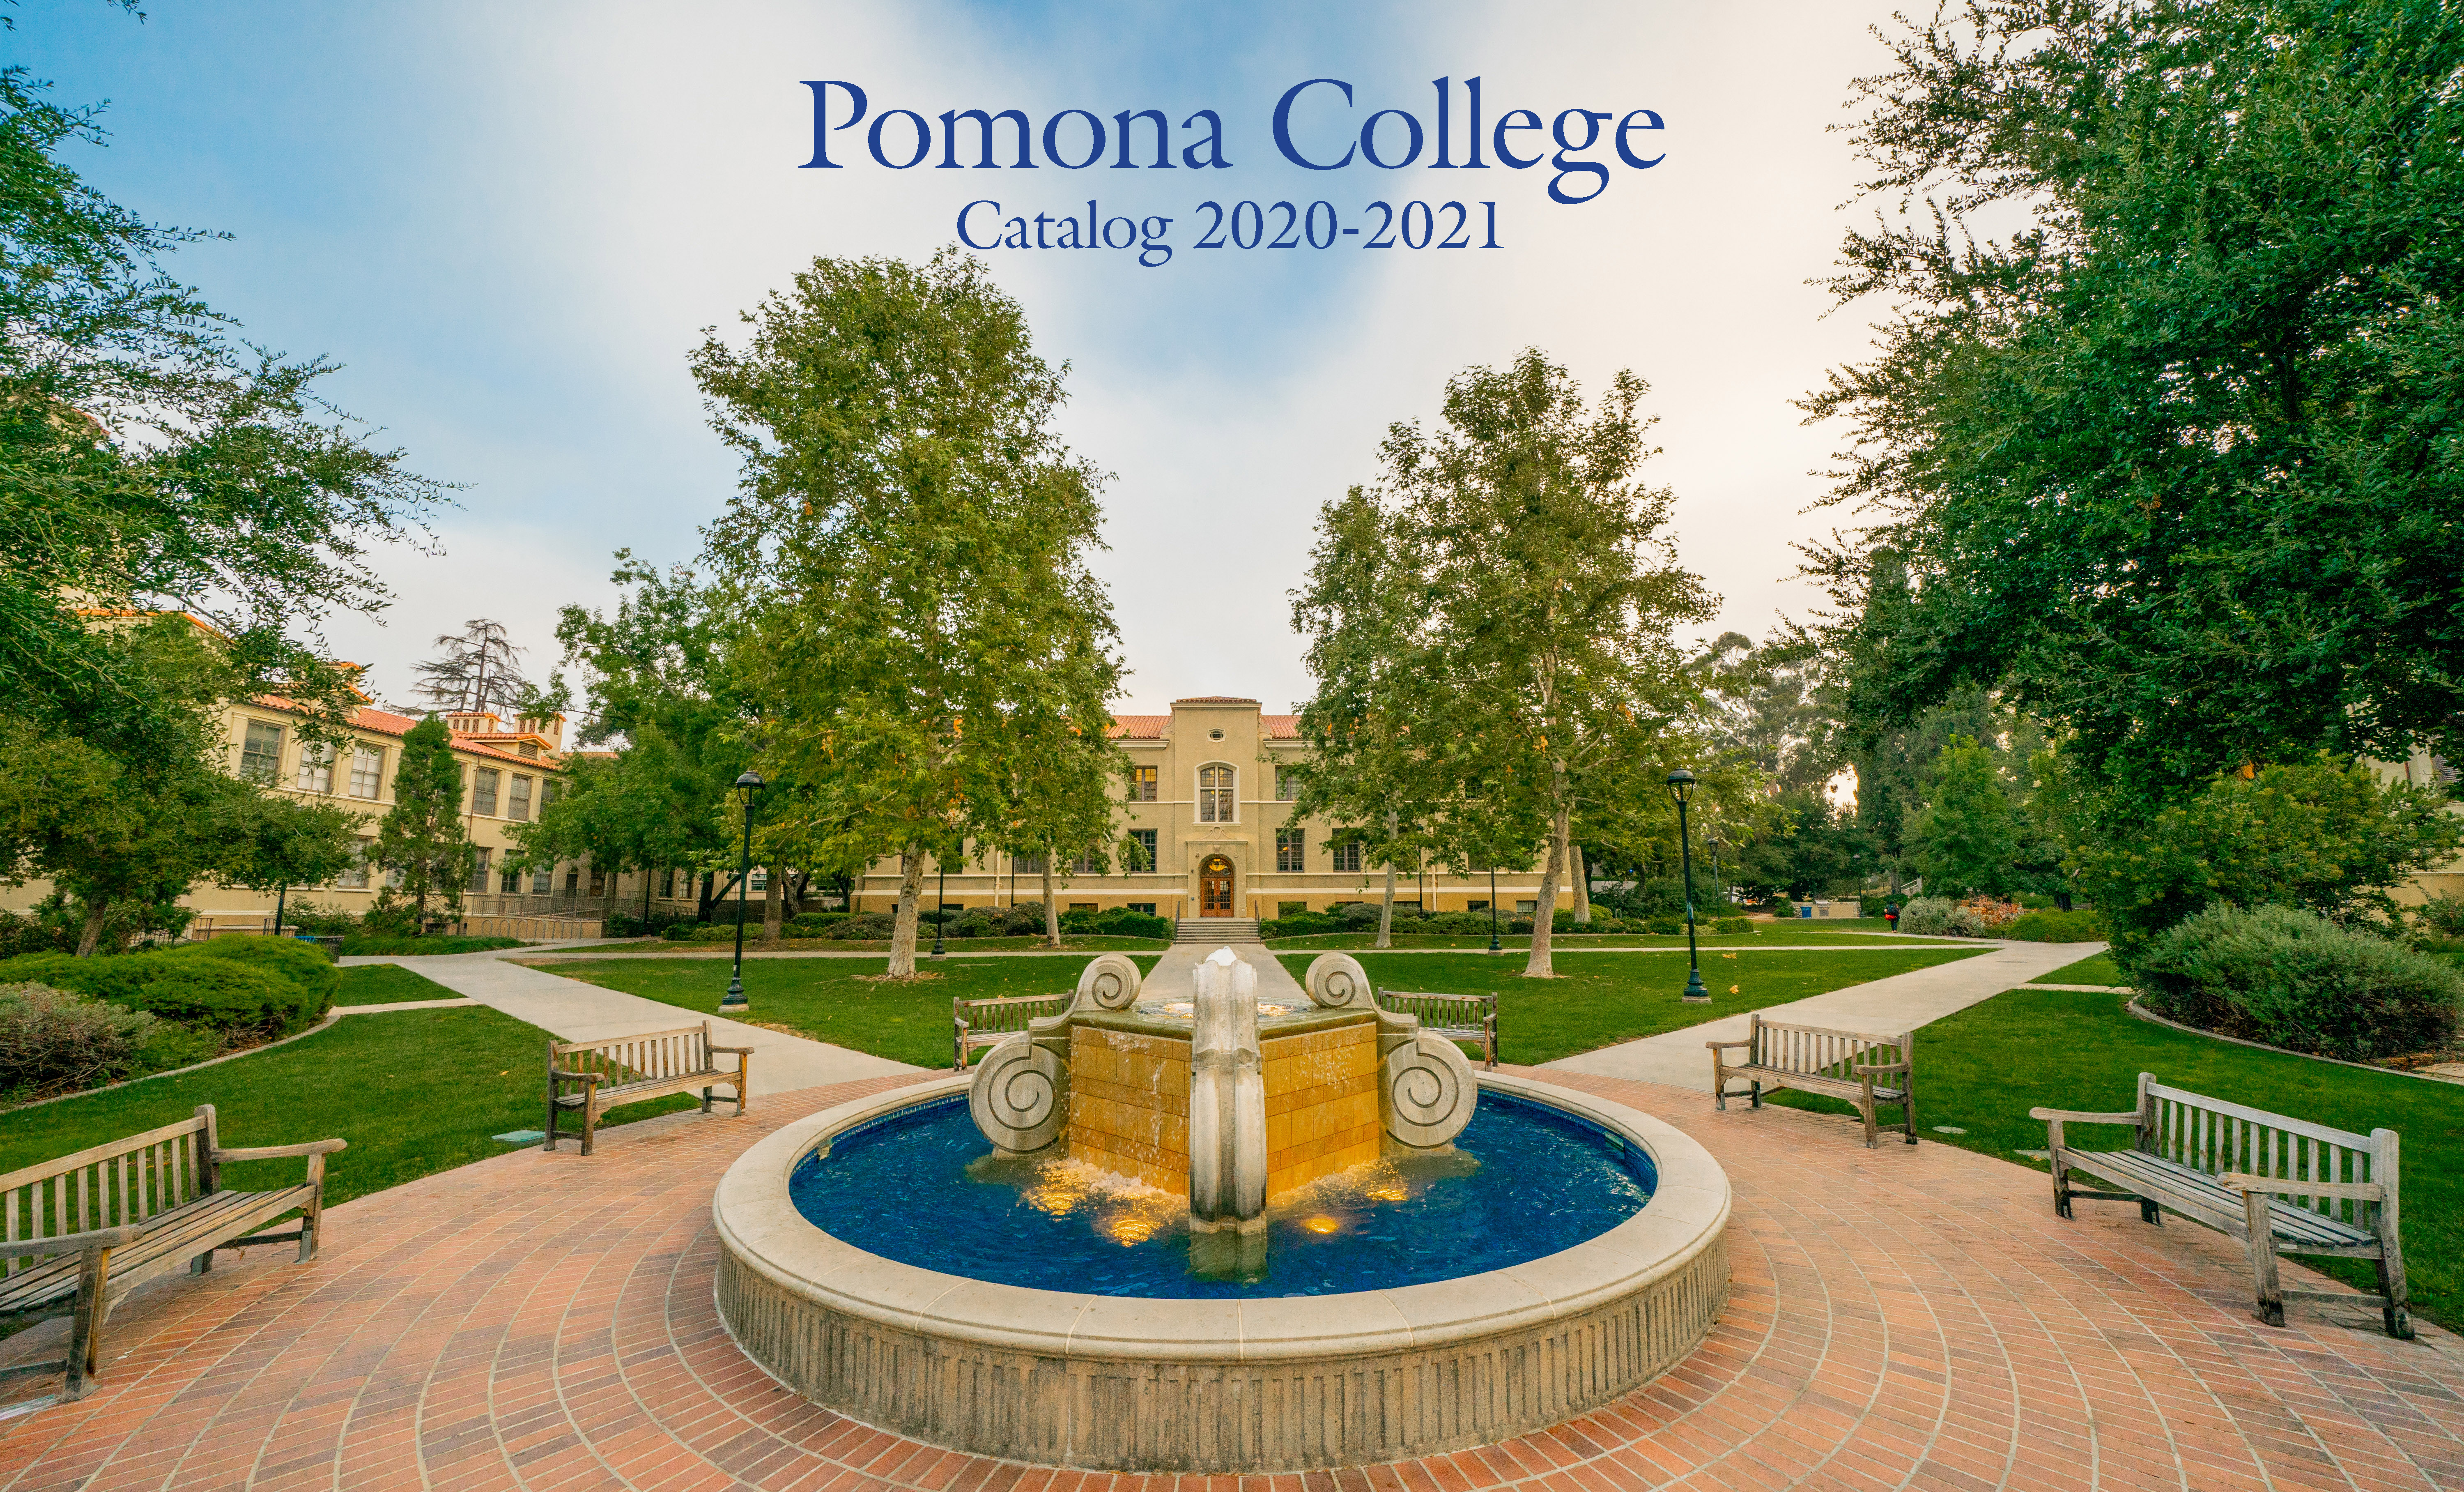 Pomona College Catalog 2020-2021